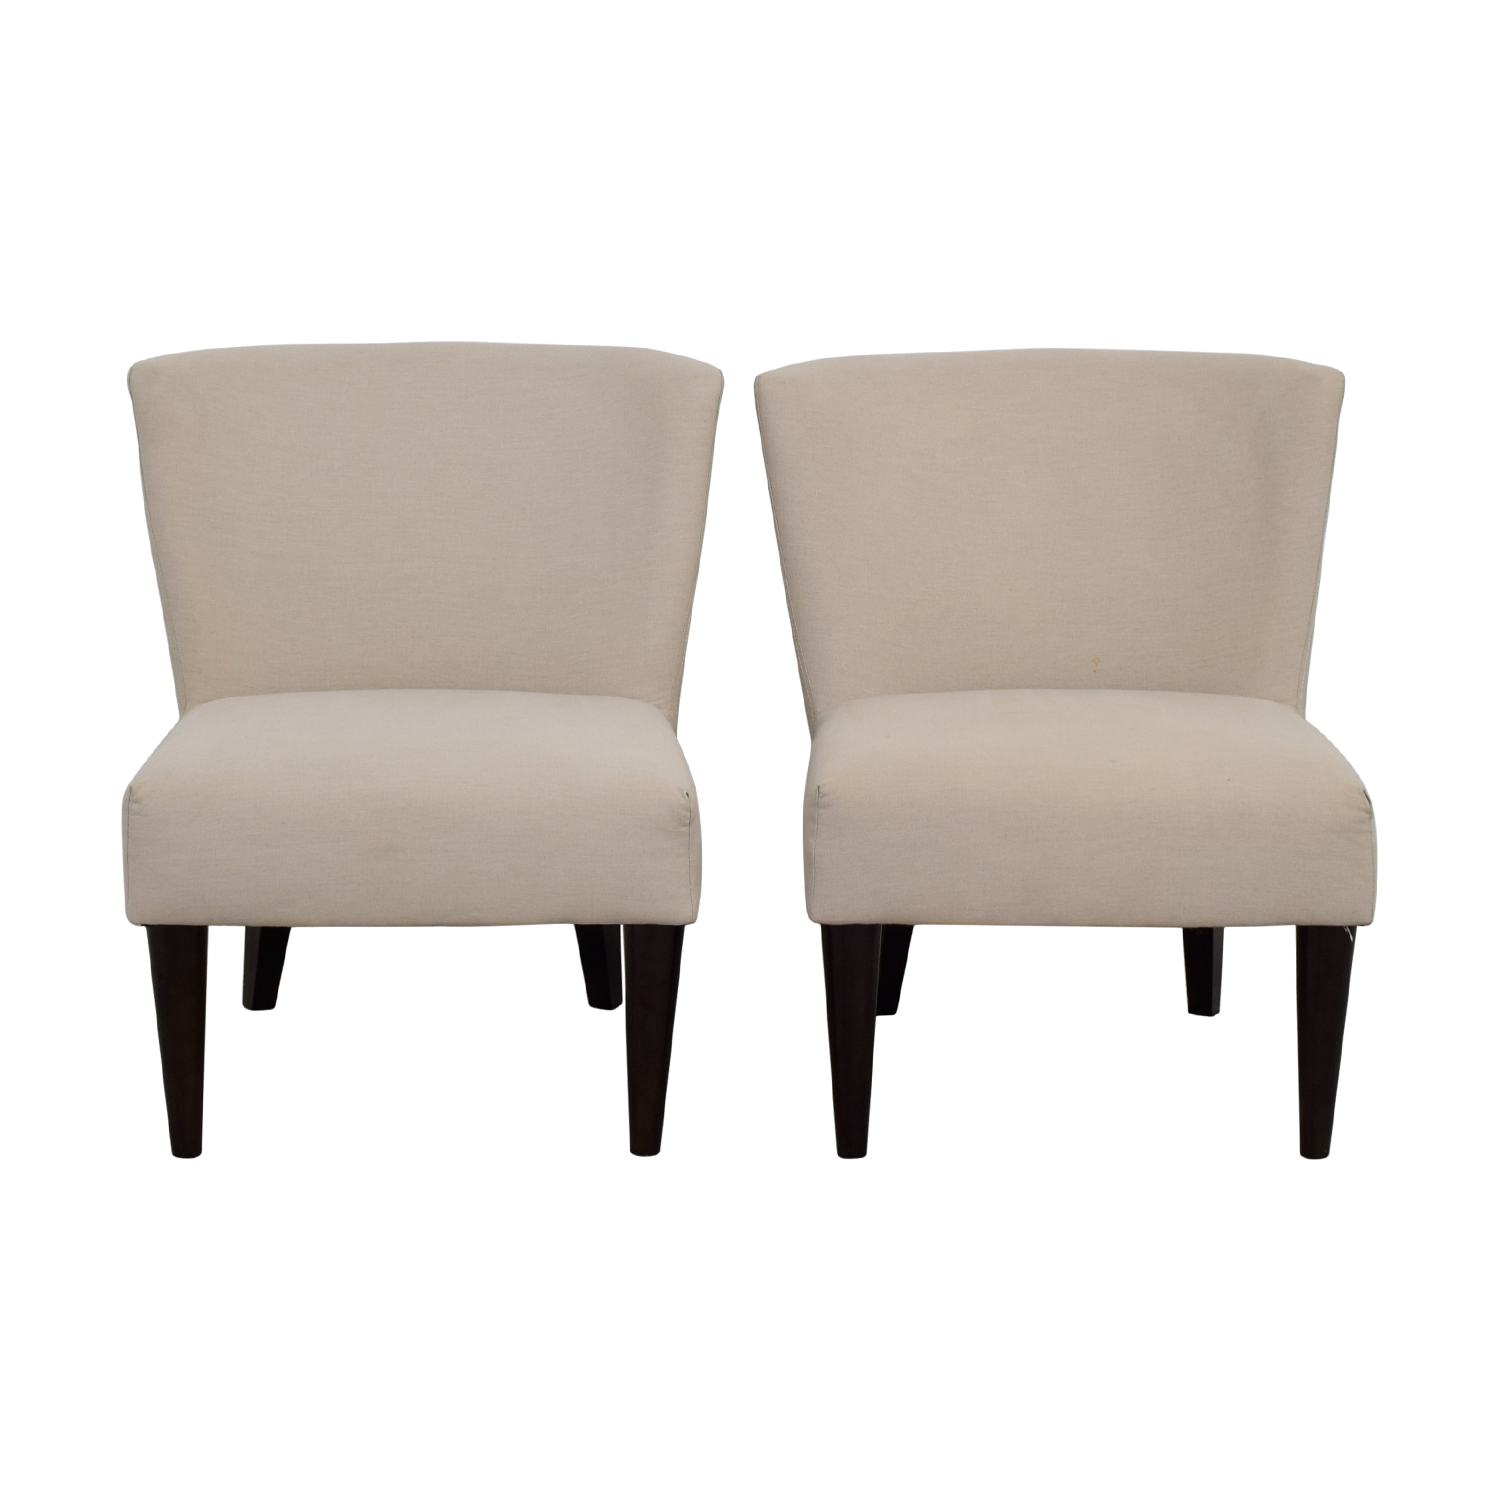 West Elm West Elm Retro Cream Chairs nj